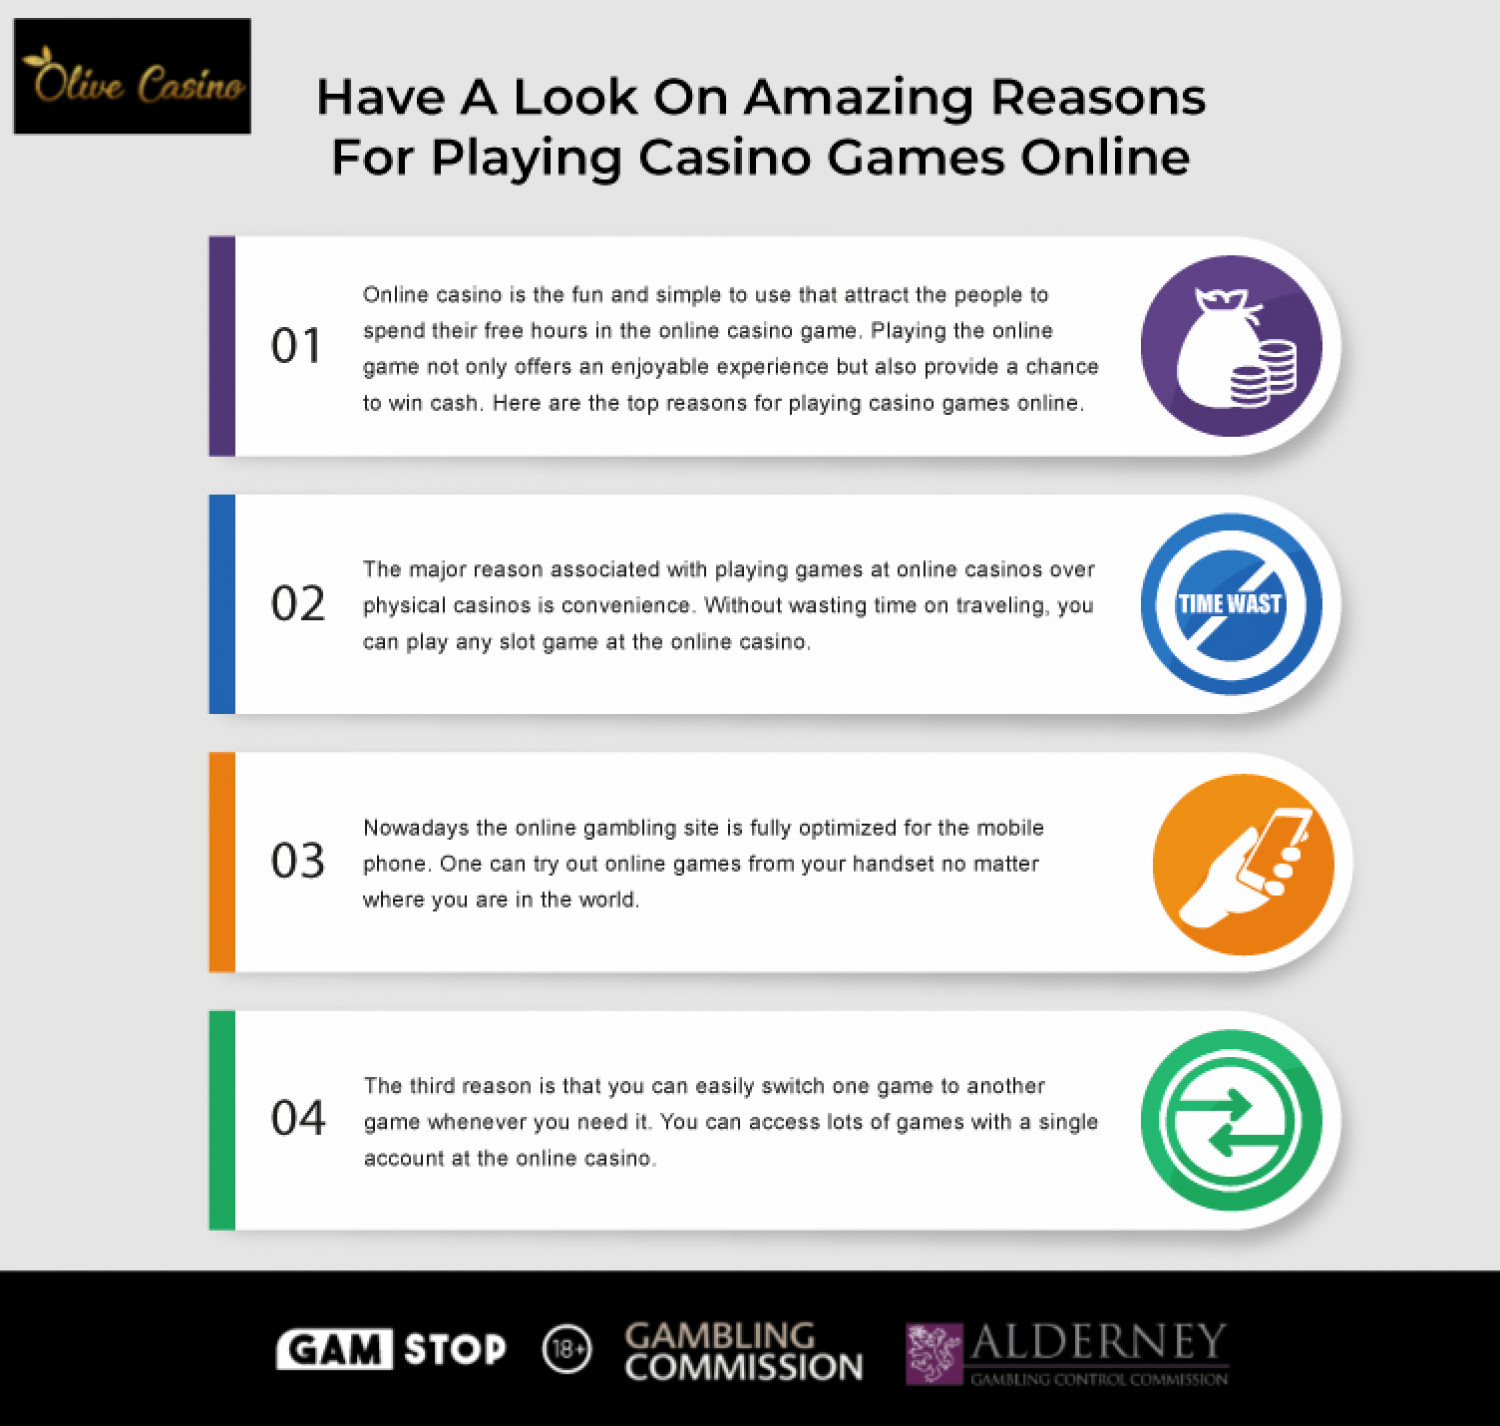 Have A Look On Amazing Reasons For Playing Casino Games Online Infographic